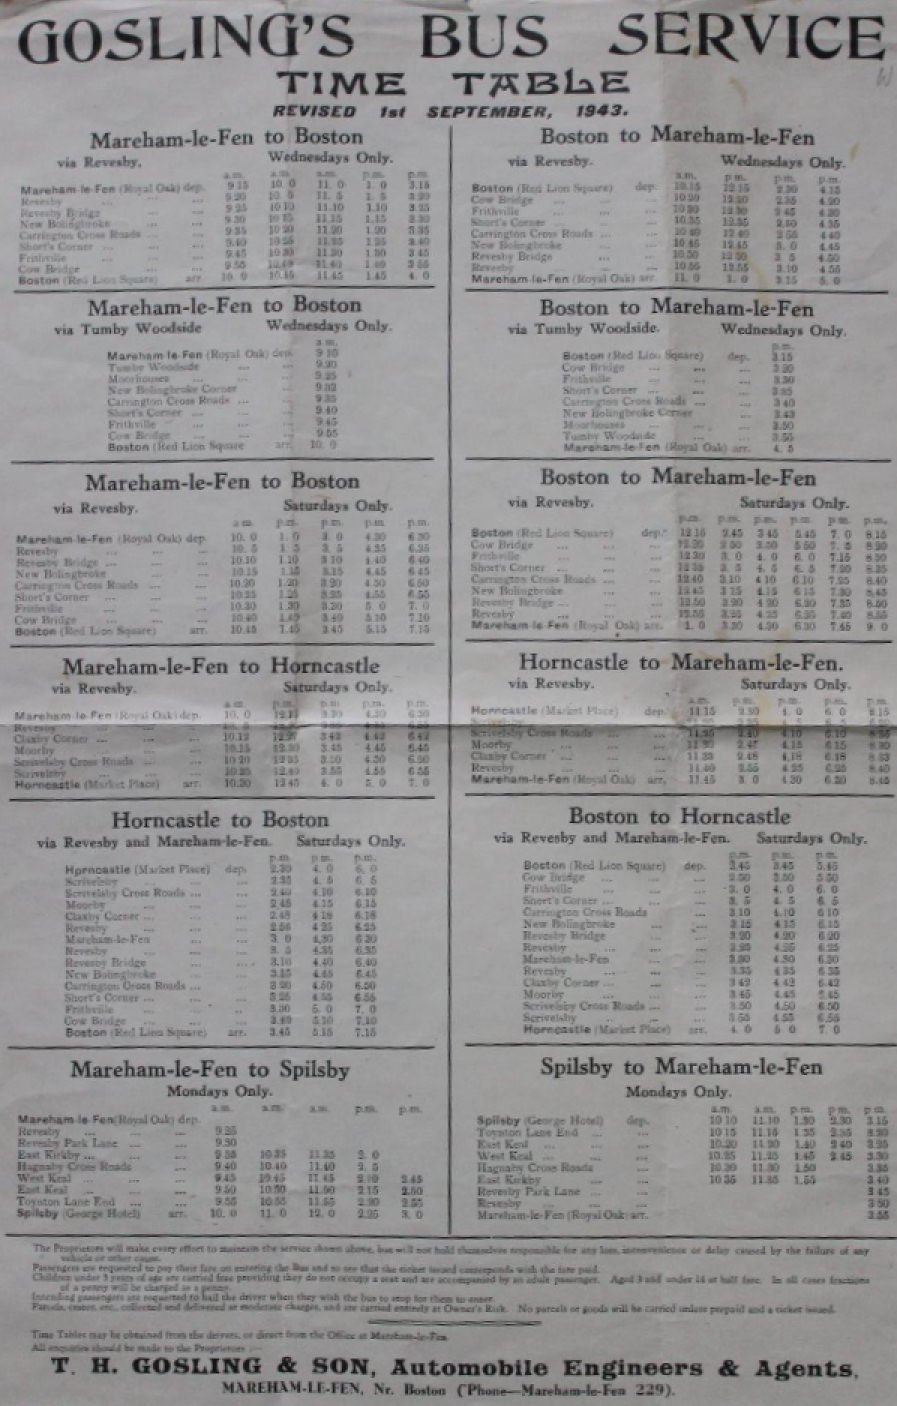 1943 timetable